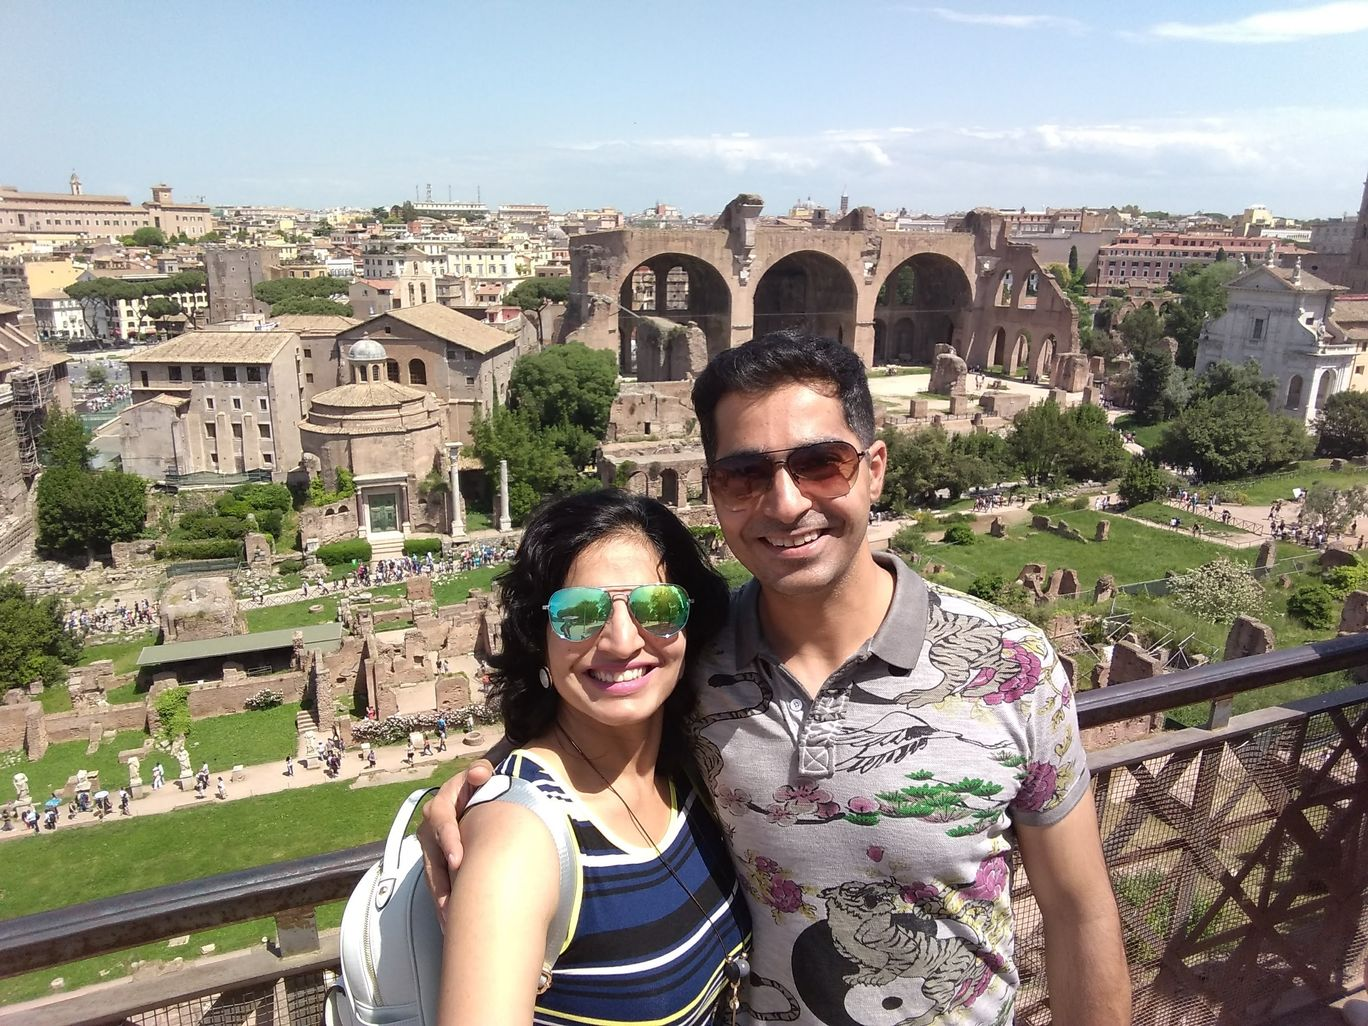 Photo of Roman Forum By Gaurav Chaudhary